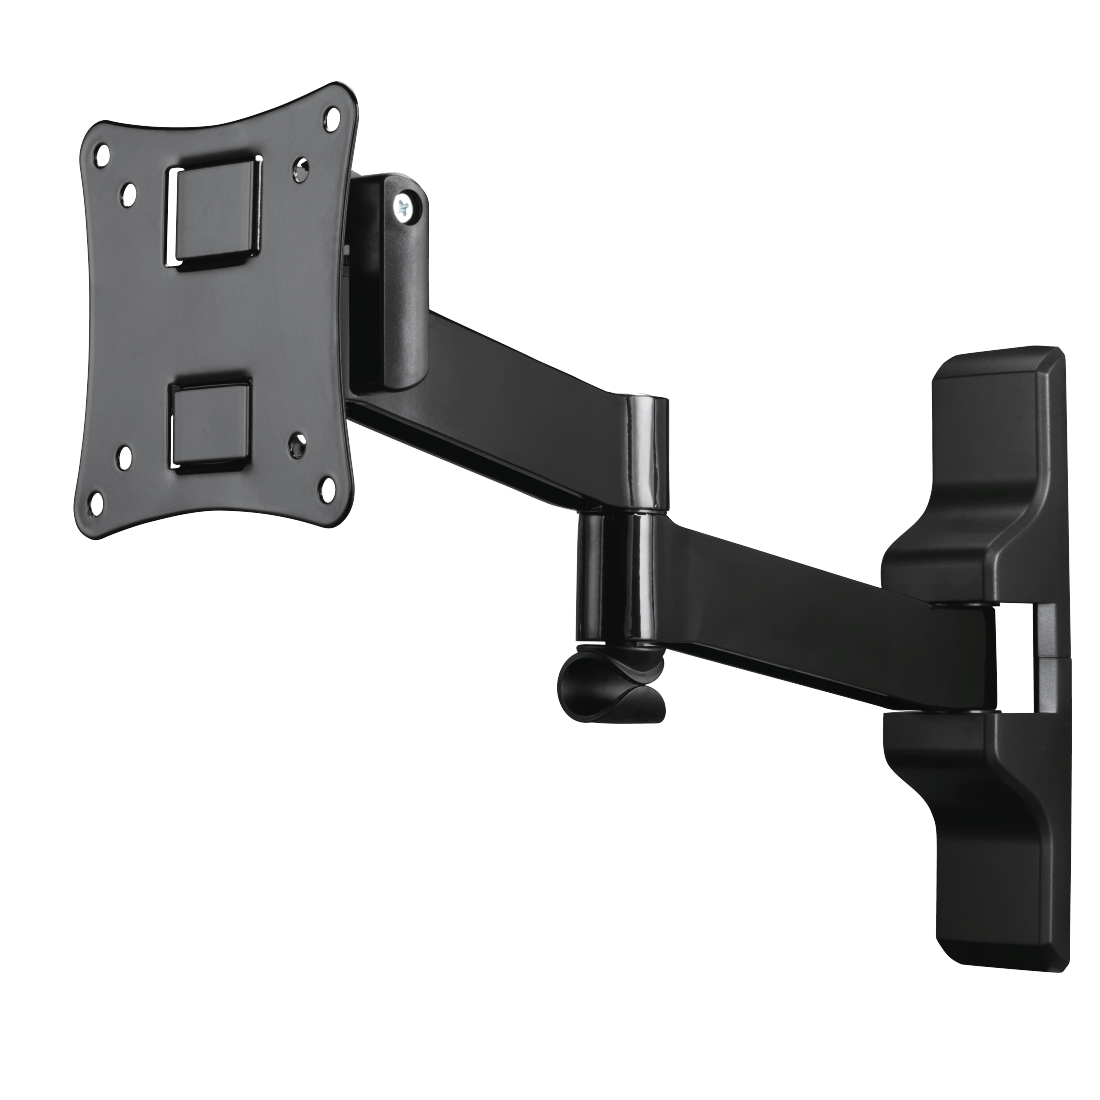 "abx High-Res Image - Hama, FULLMOTION TV Wall Bracket, 5 Stars, 66cm (26""), 2 Arm, black"